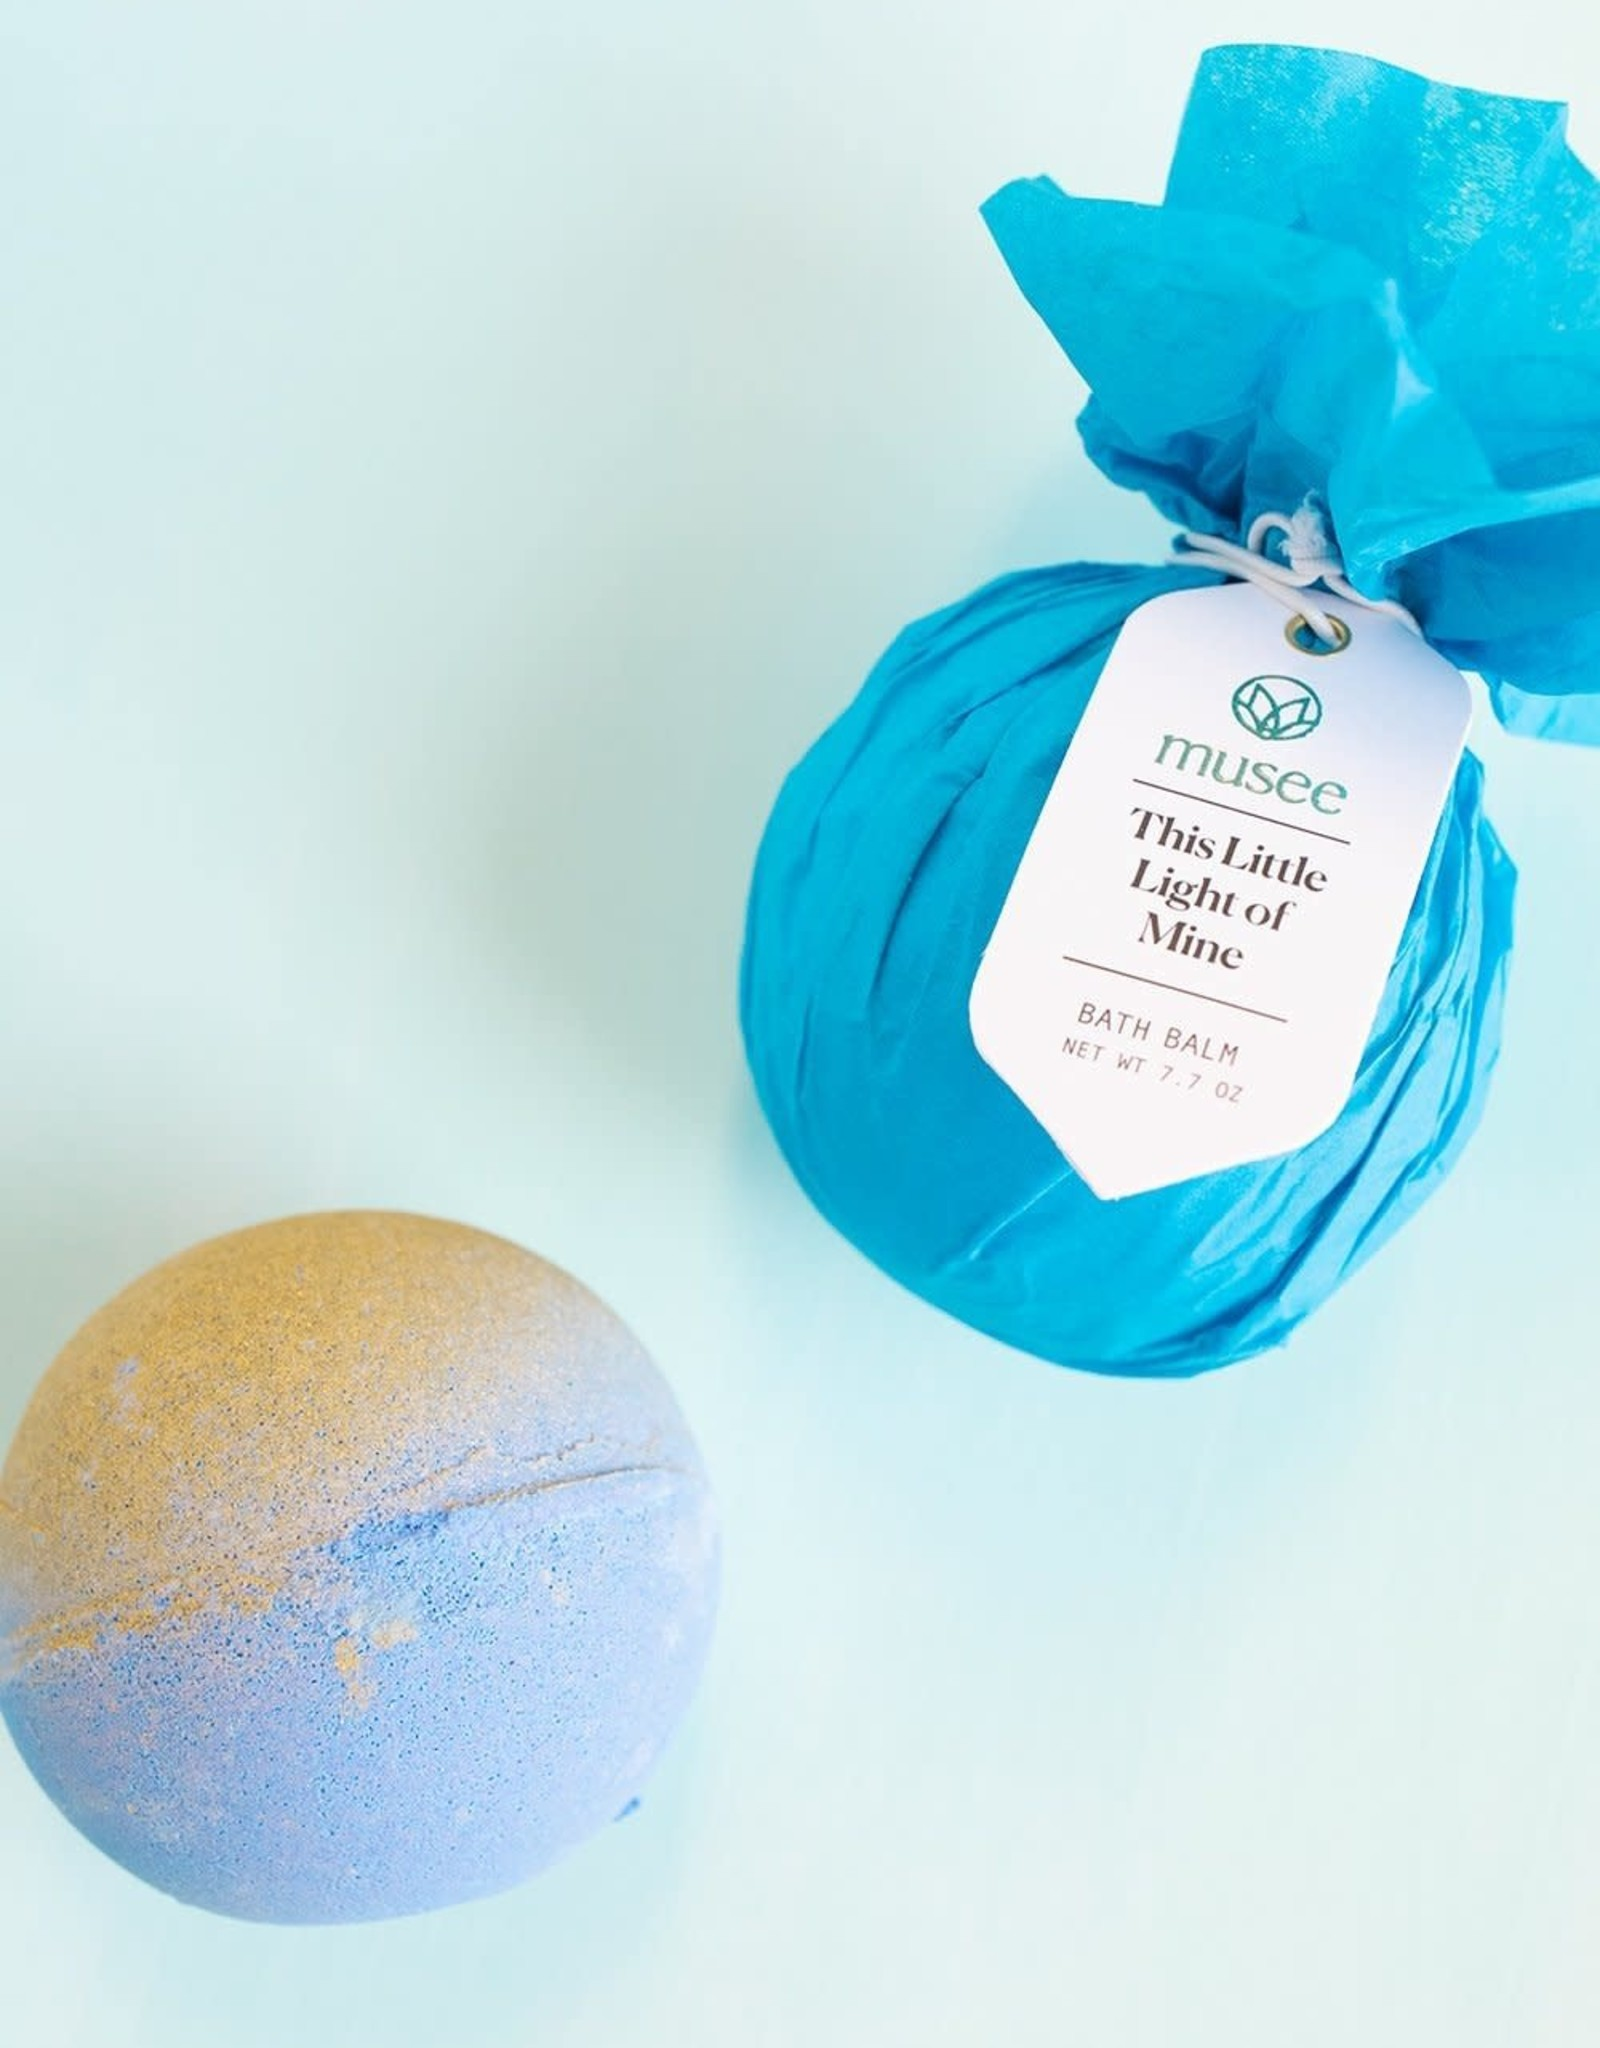 Musee Bath Bomb - This Little Light of Mine